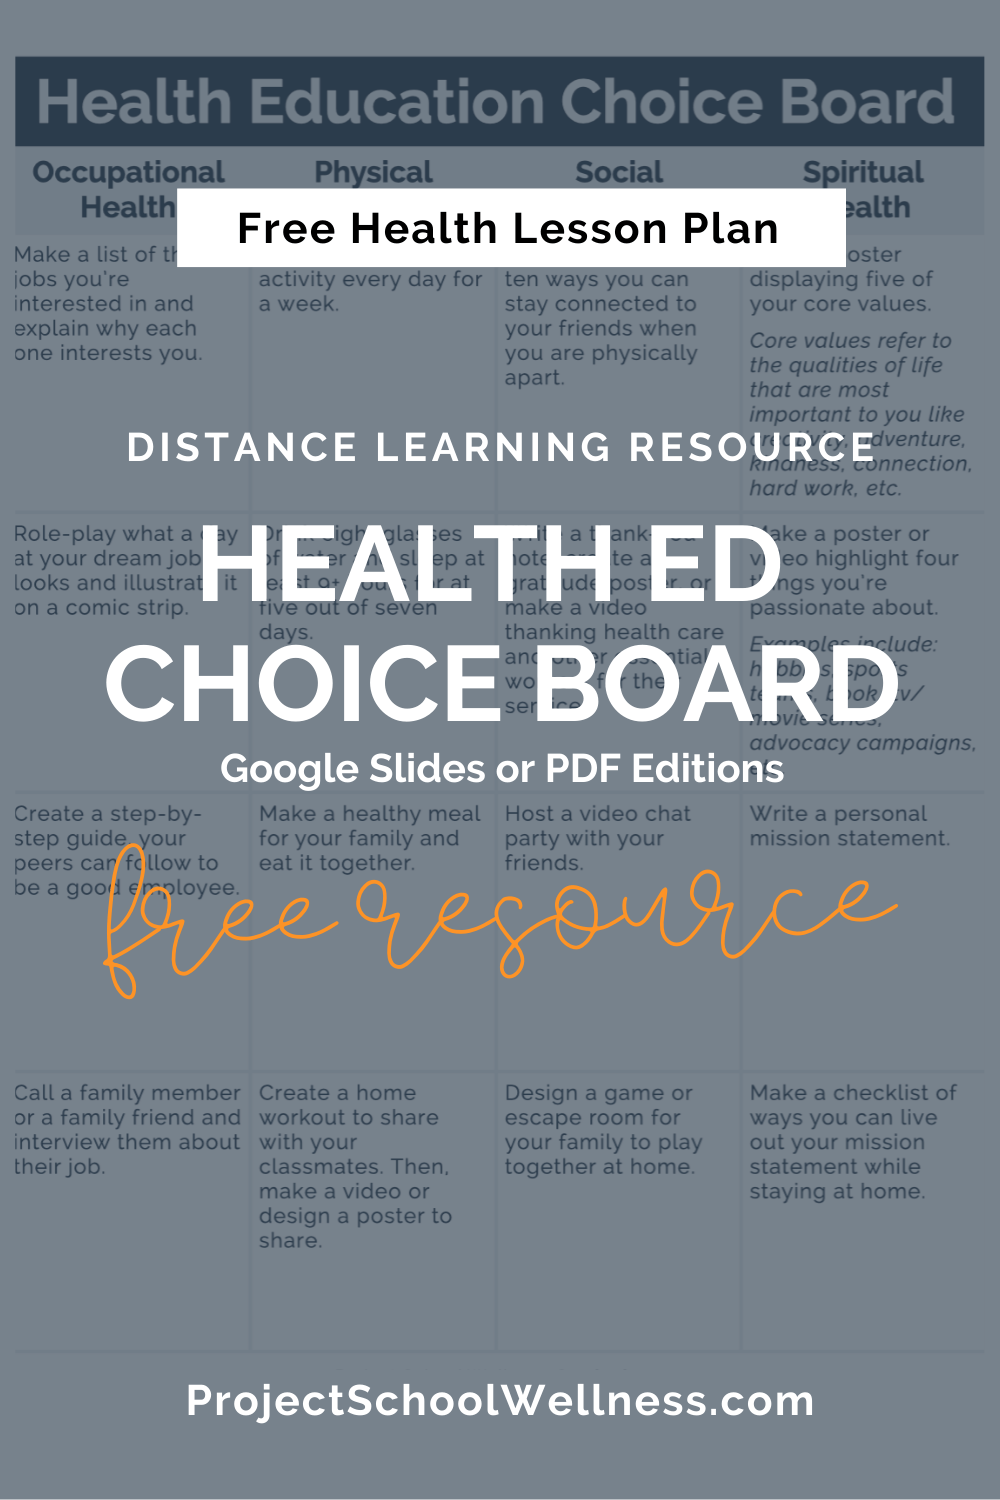 Free Health Lesson Plan - Health Education Choice Board - Digital Learning Resource - Google Classroom resource with Google Slides and PDF worksheets - Project School Wellness